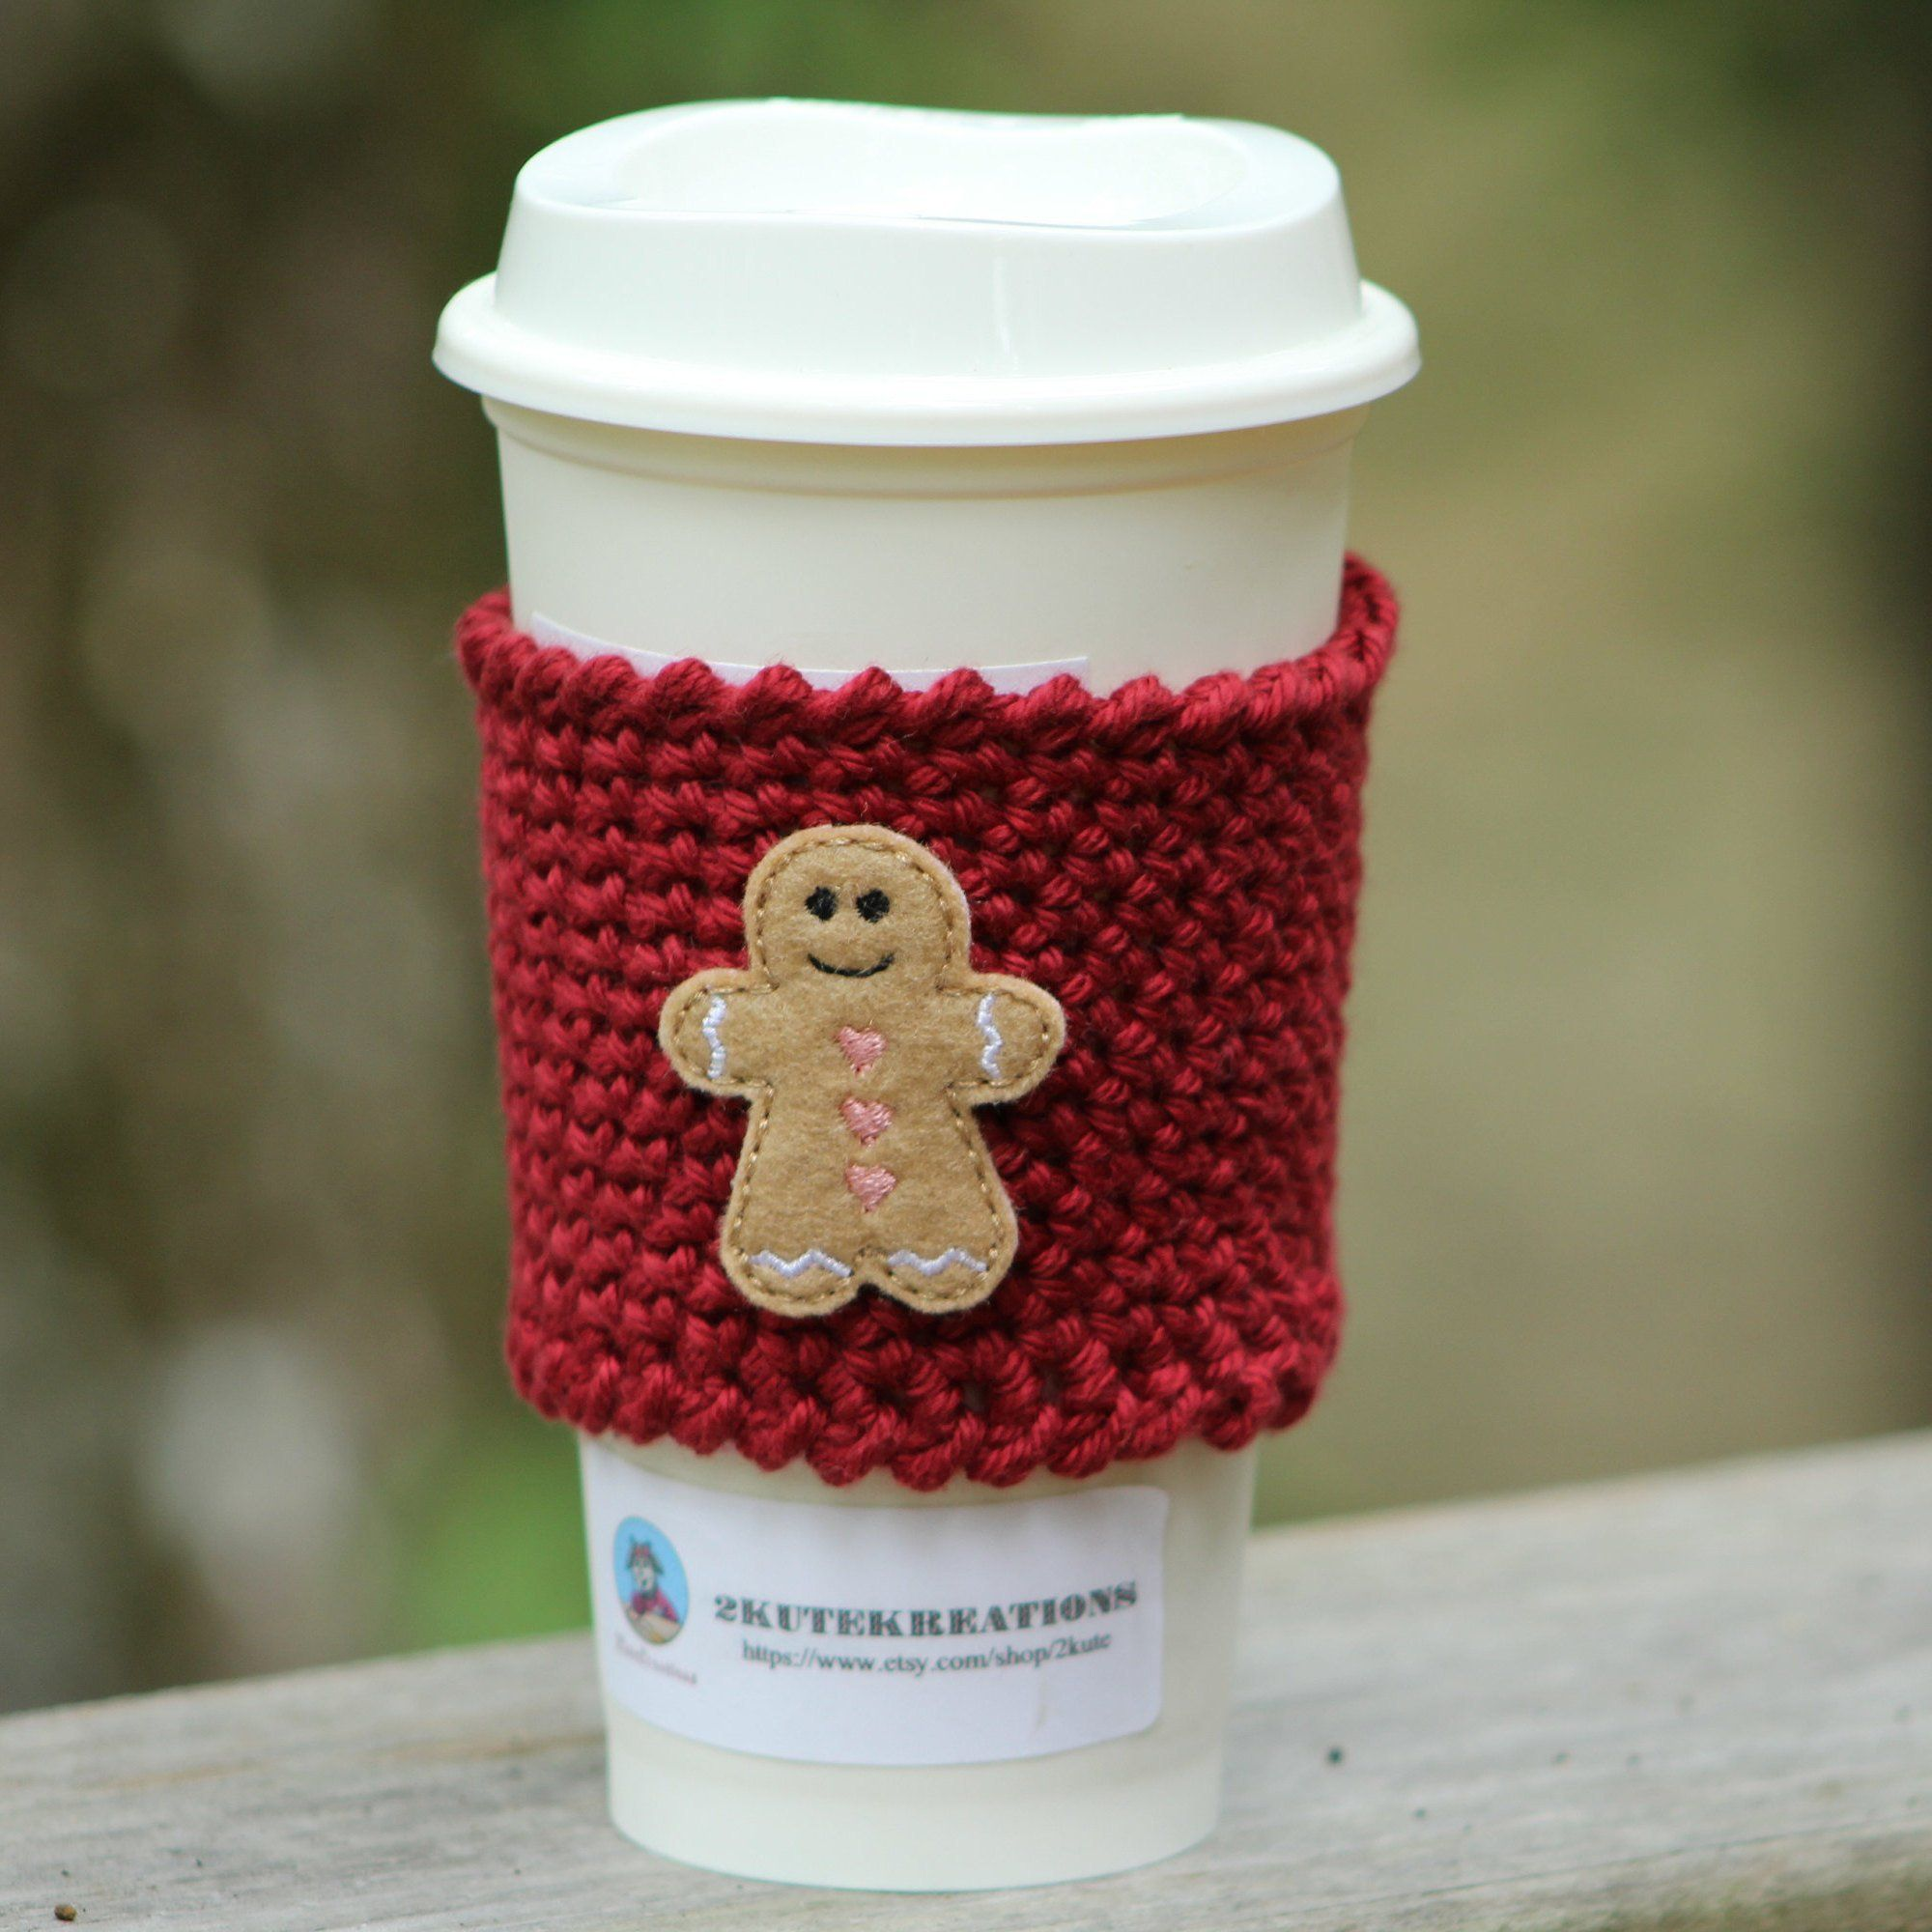 Cup Sleeve Cup Cozy Crochet Coffee Cozy Gingerbread Man Cozy Christmas Gift Gift Mom Gift Best Friend G Crochet Coffee Cozy Cup Cozy Coffee Cup Sleeves